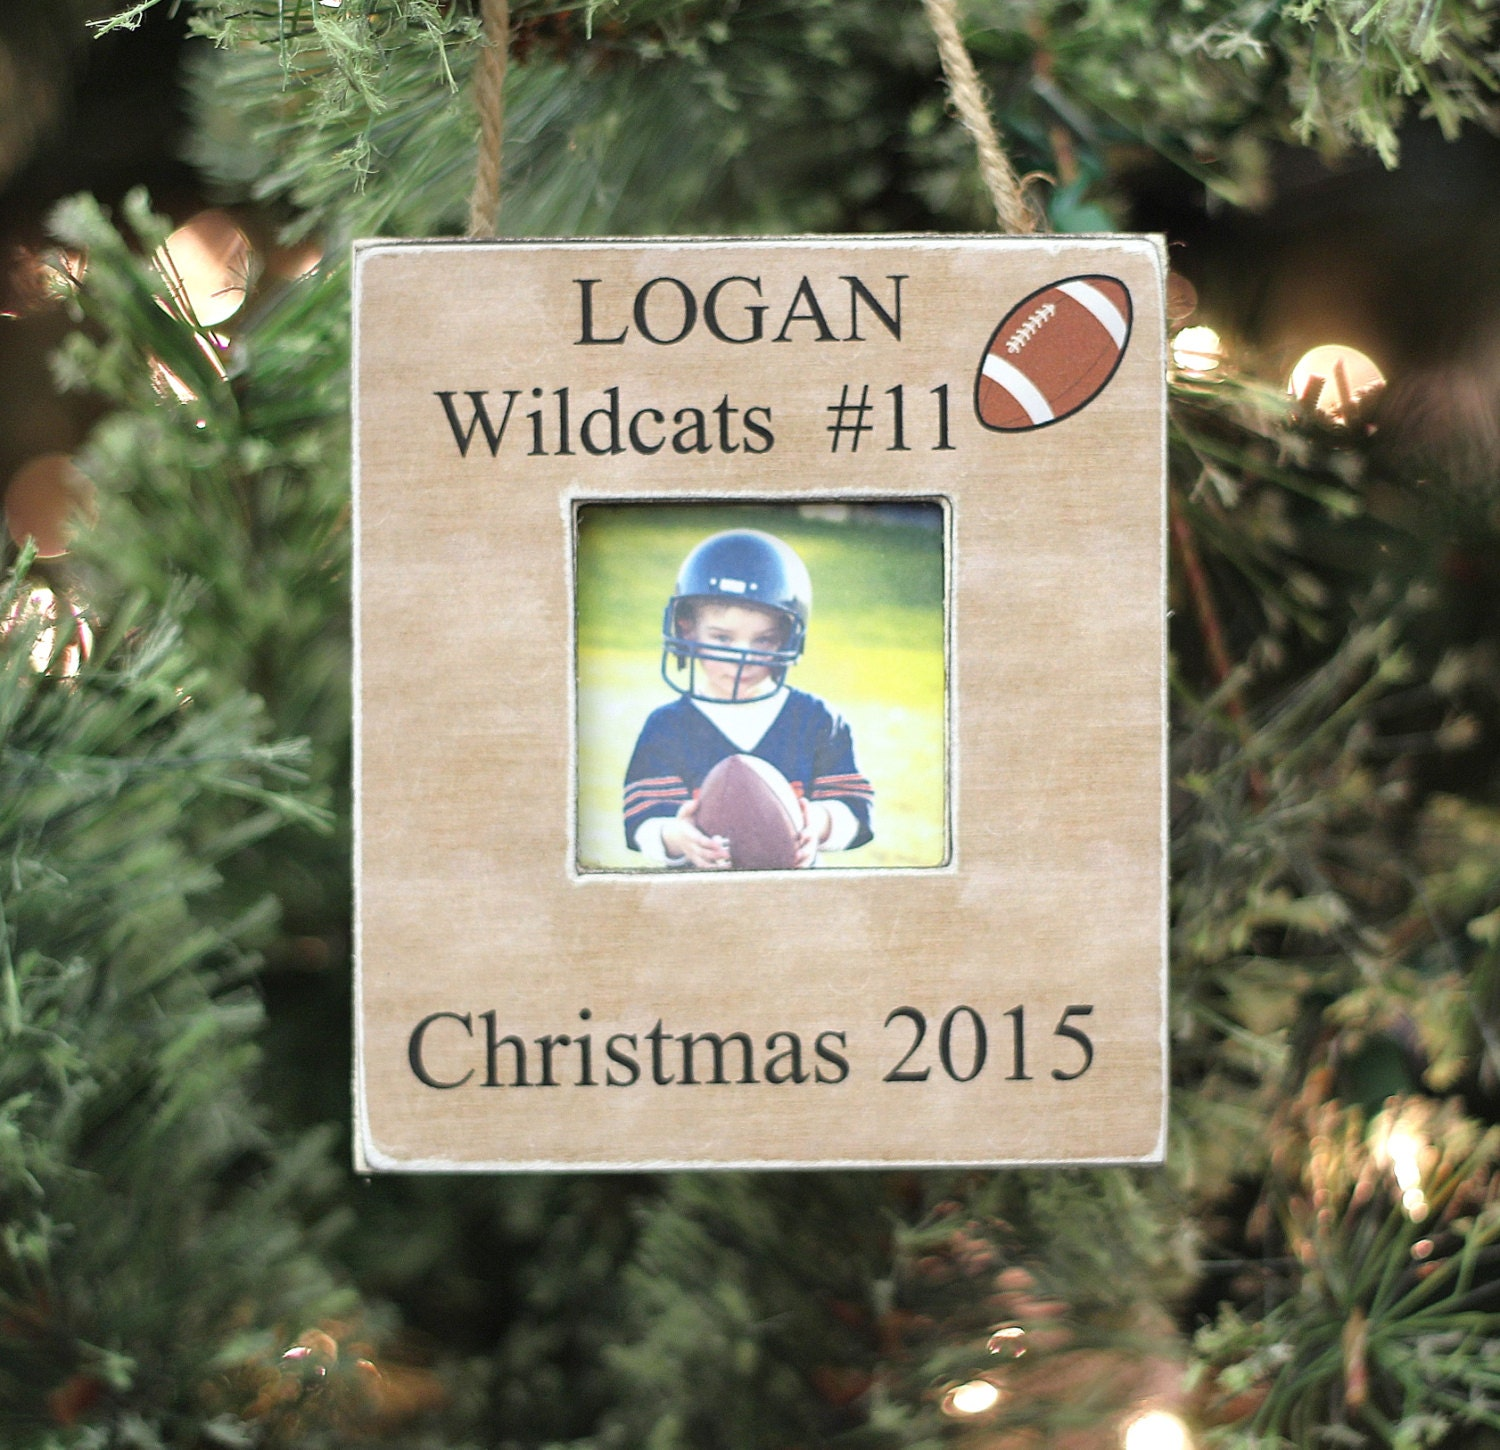 Football player ornament - Football Ornament Christmas Gift Personalized Photo Ornament For Football Player Team Christmas Holiday Gift